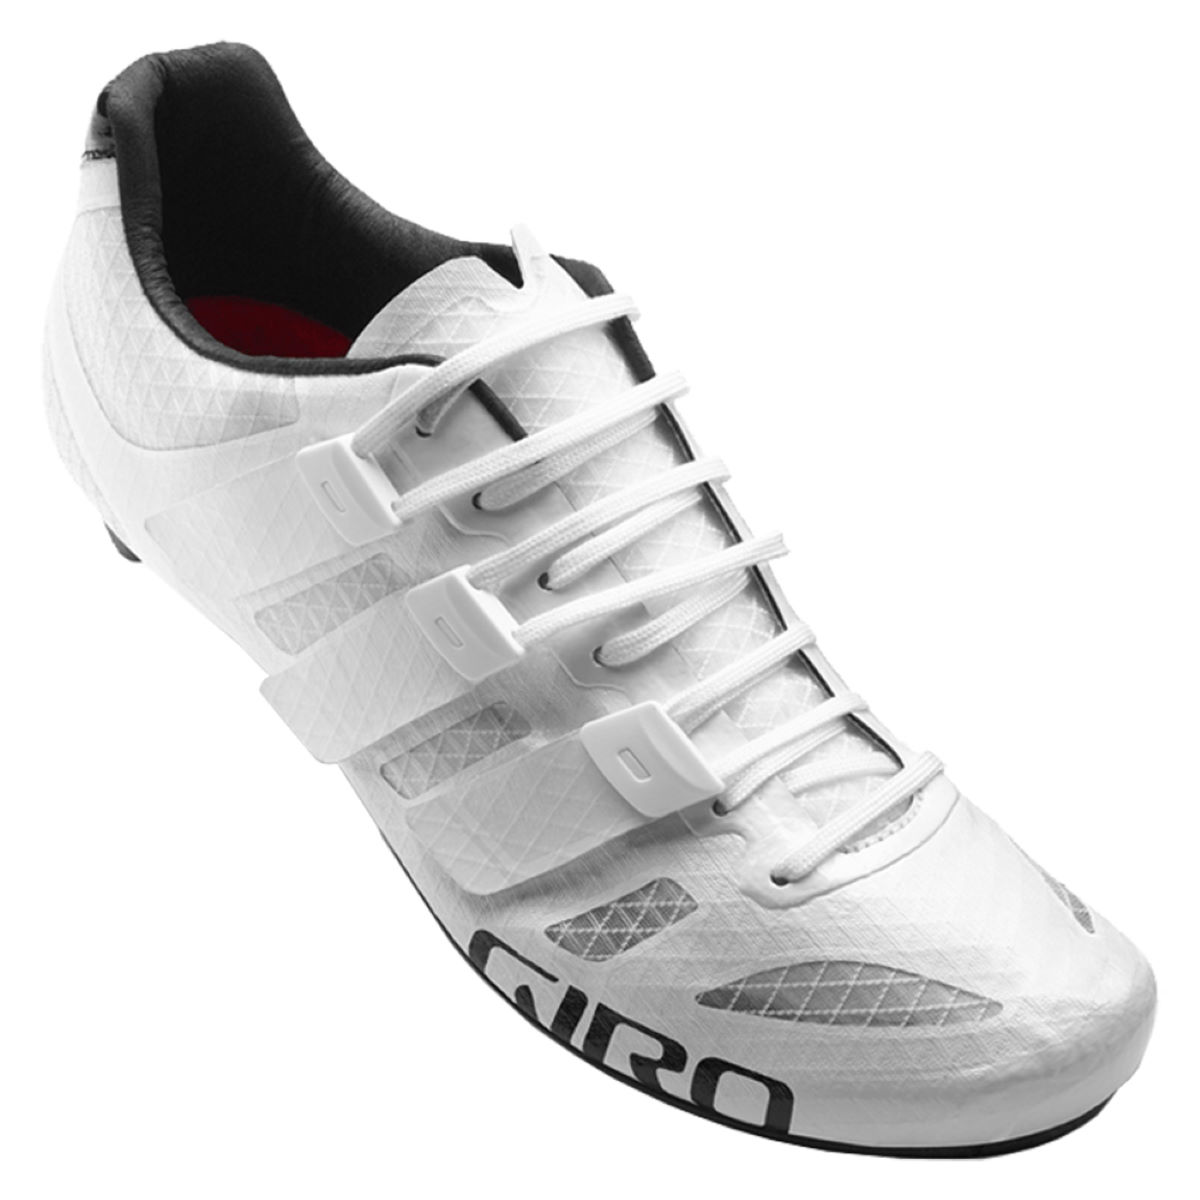 Giro techlace prolight road shoe internal white 2018 gisprt840